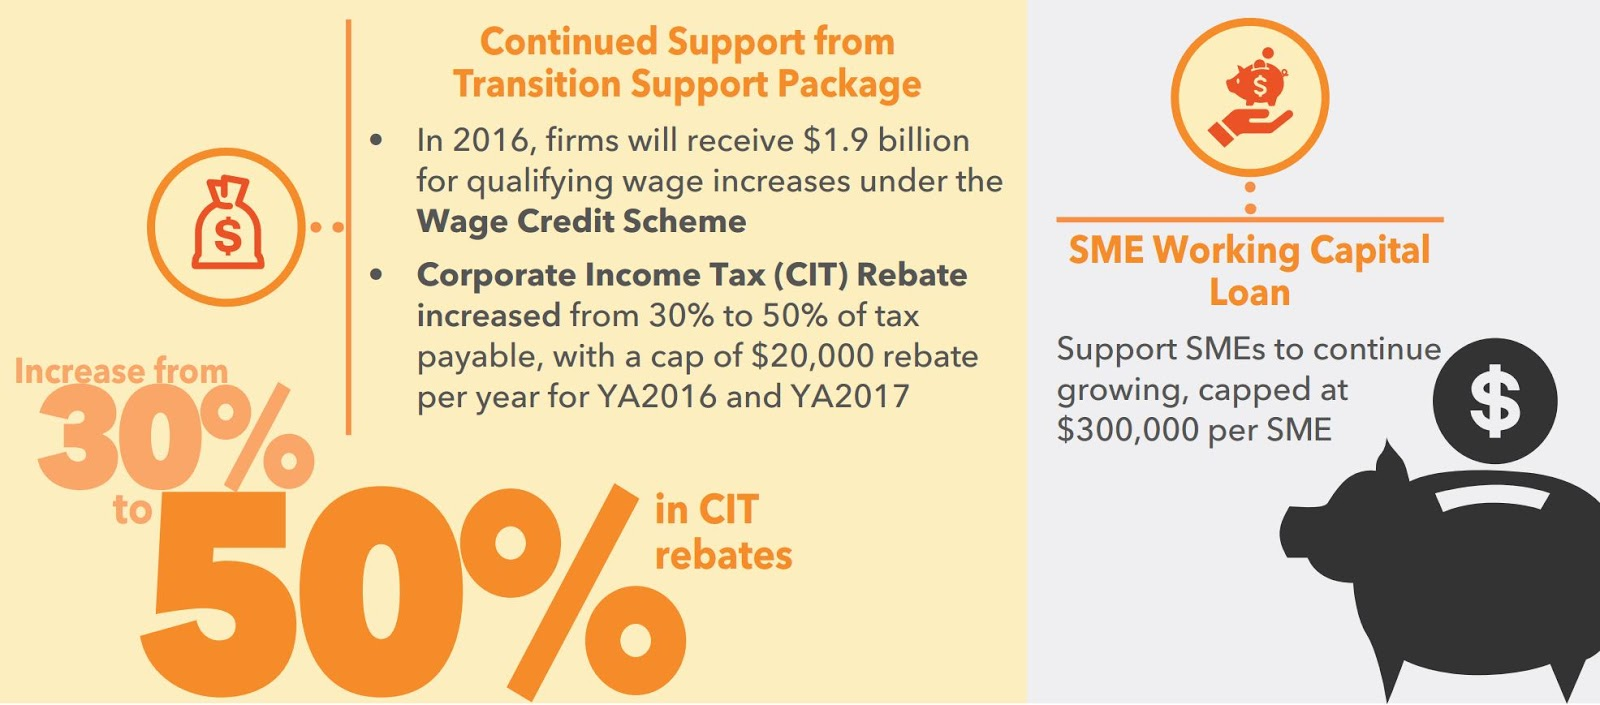 Source Budget In Brief Doent On Singapore Website Corporate Income Tax Rebates Are